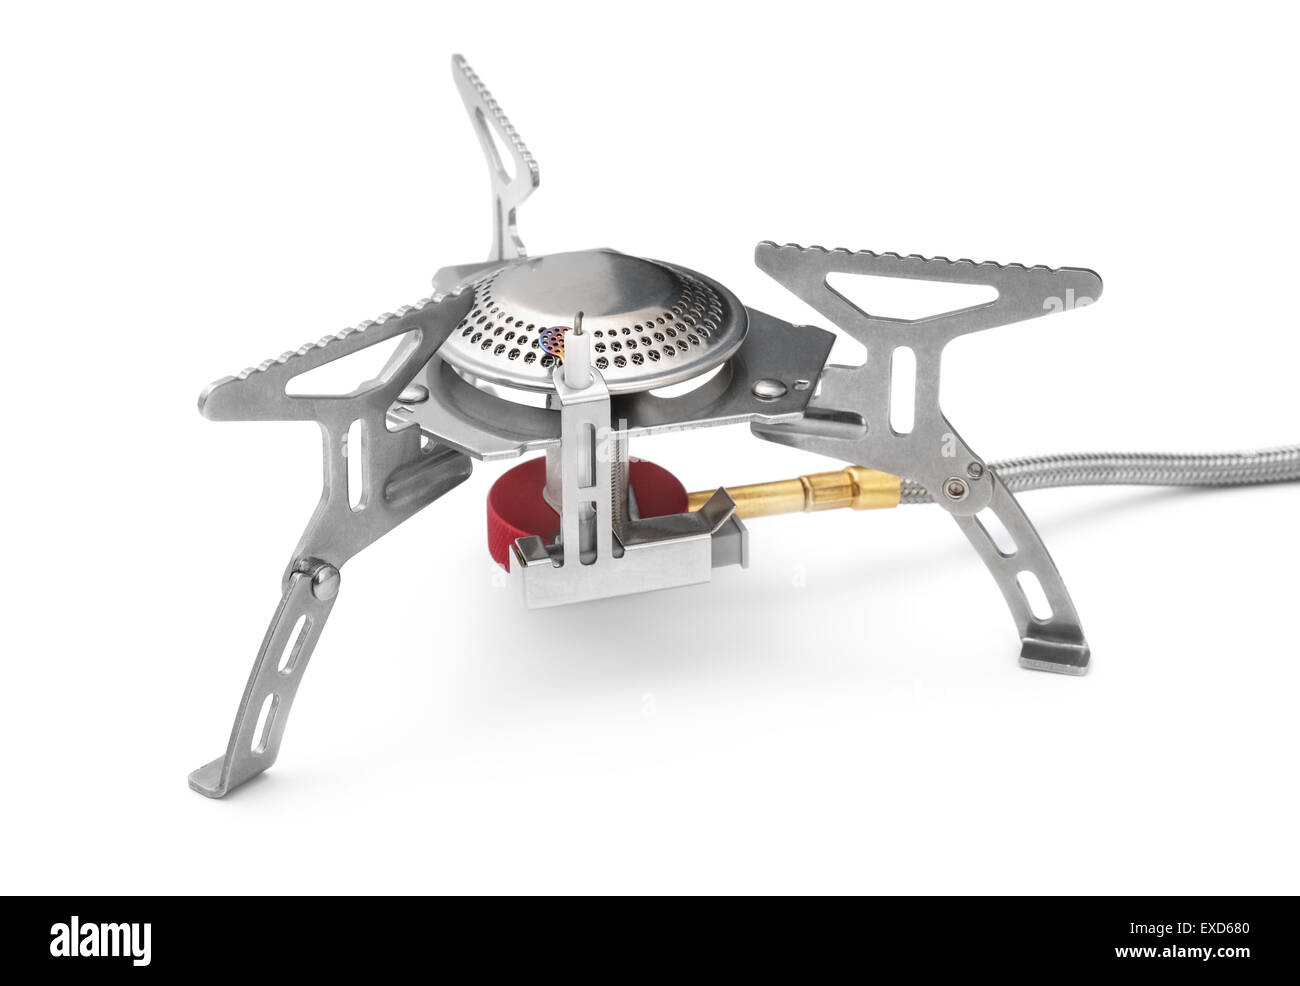 Camping gas stove isolated on white - Stock Image